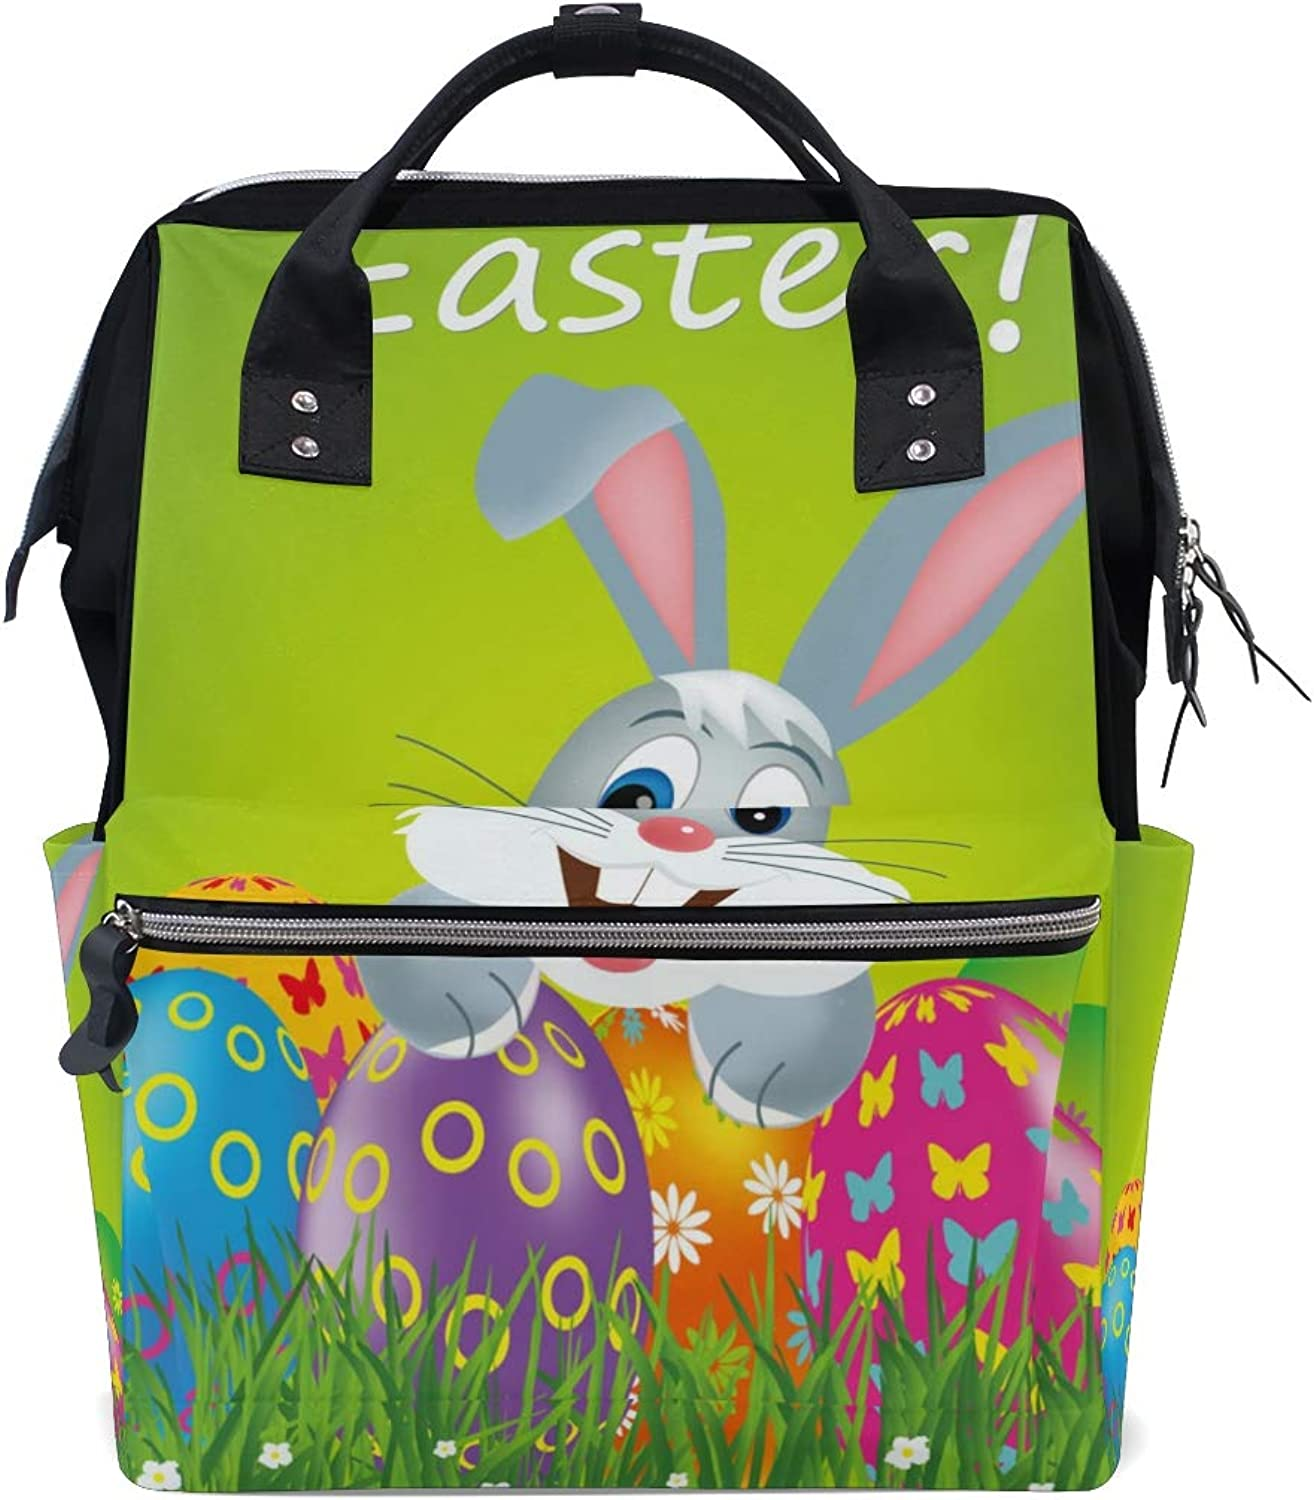 ColourLife Diaper bag Backpack Easter colorful Eggs And Bunny Tote Bag Casual Daypack Multifunctional Nappy Bags